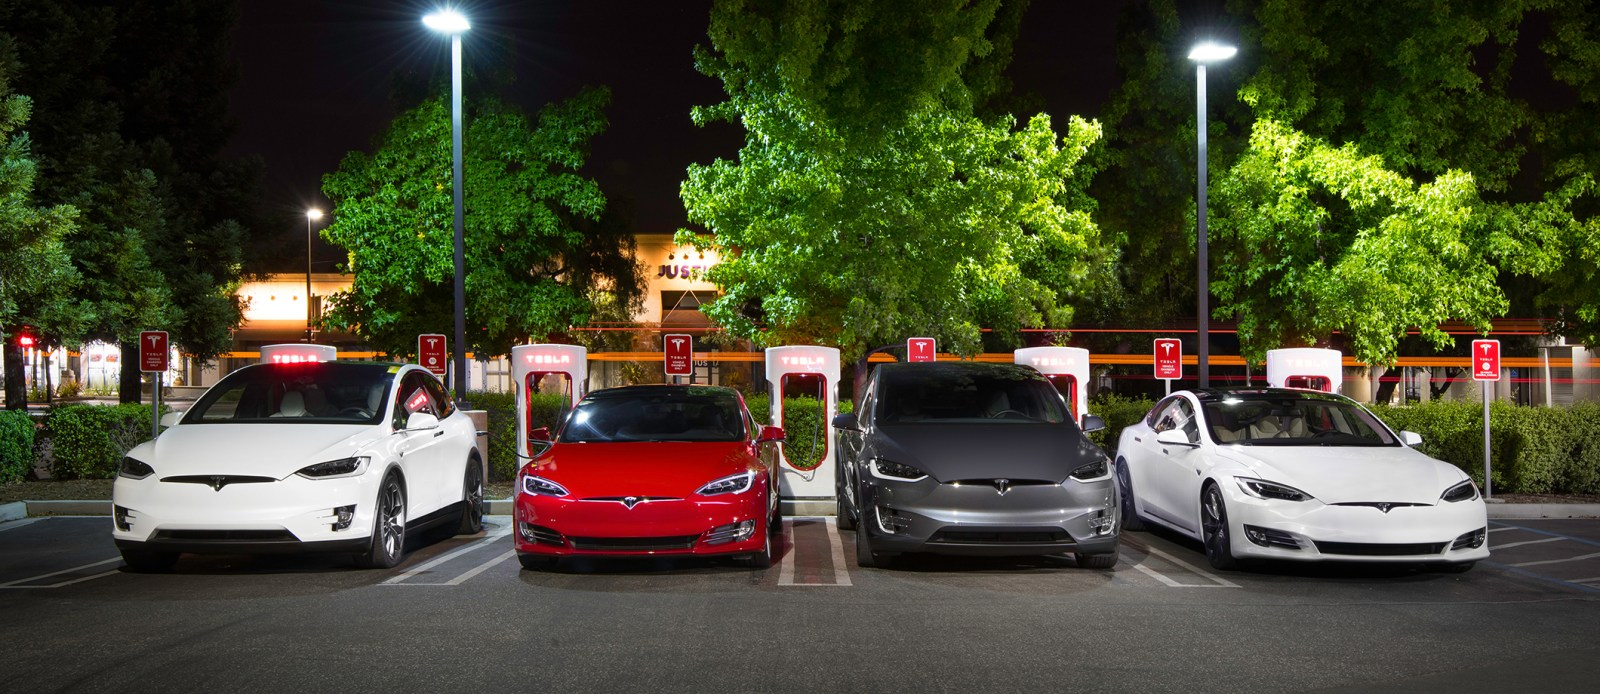 Tesla retroactively extends free unlimited Supercharging to all current vehicles